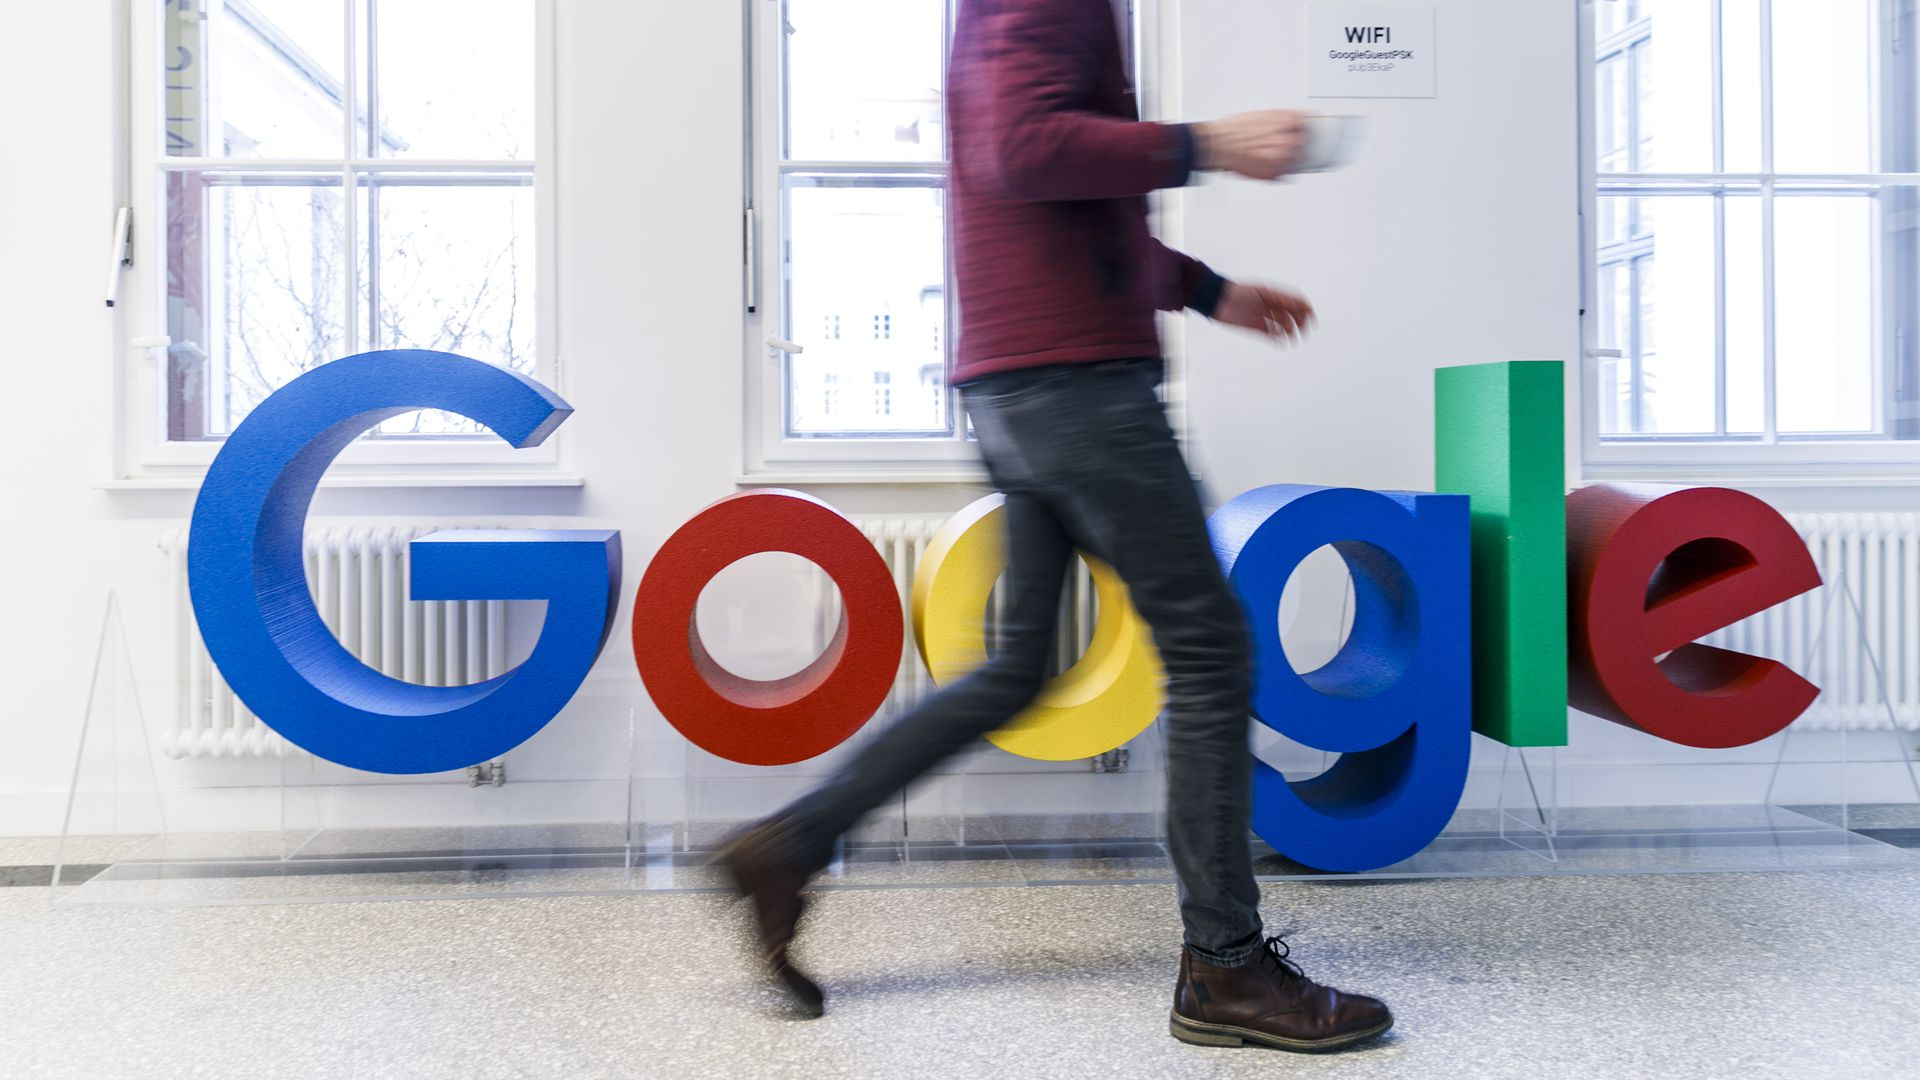 Google logo with man walking in front of it